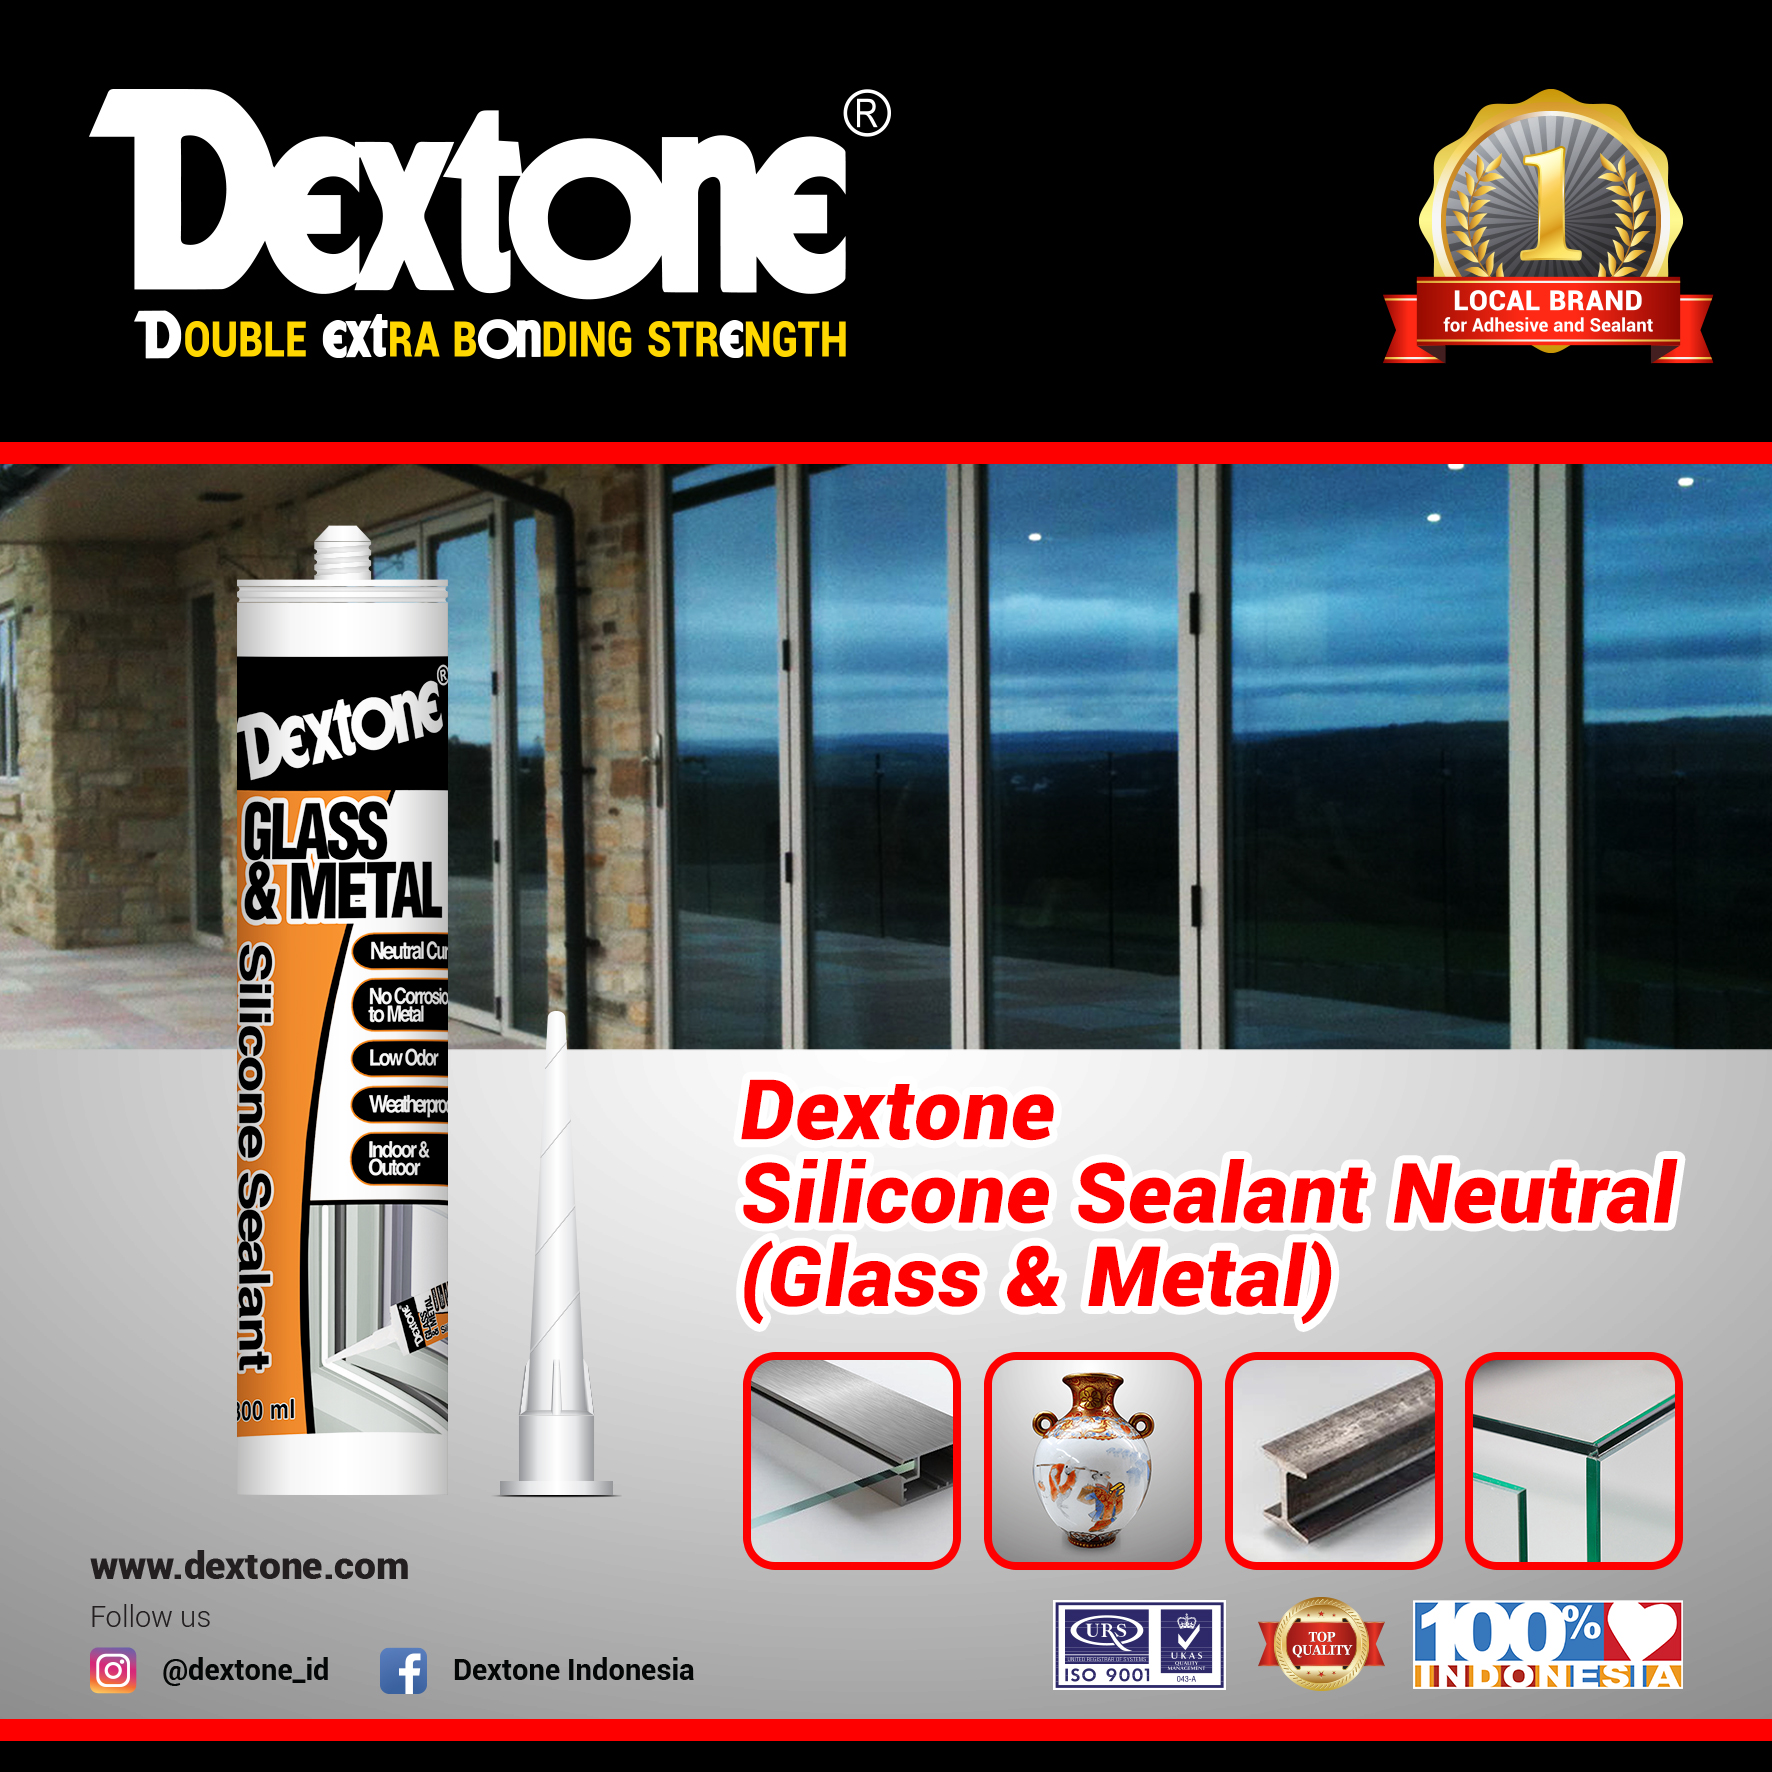 Dextone Silicone Sealant Neutral (Glass & Metal)